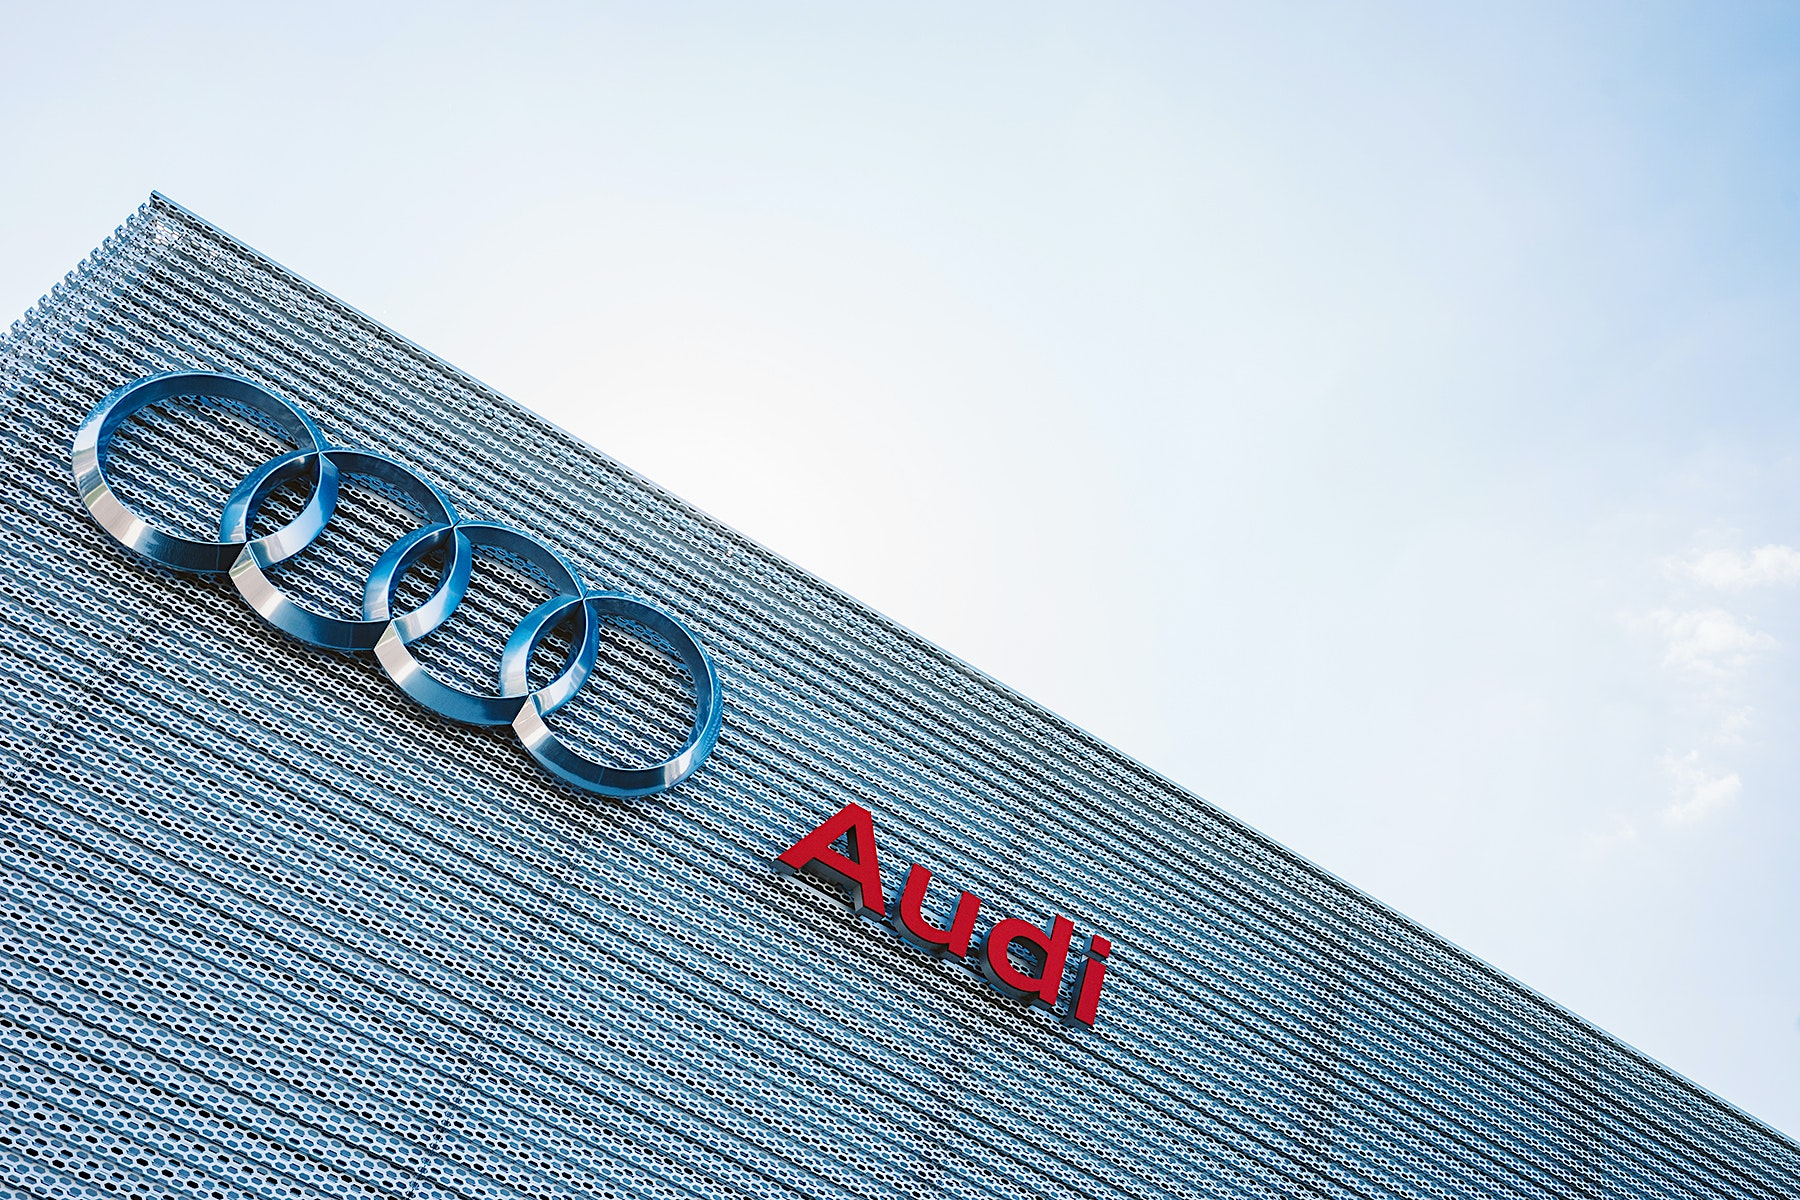 Achritectural images of Audi London by Scott Webb